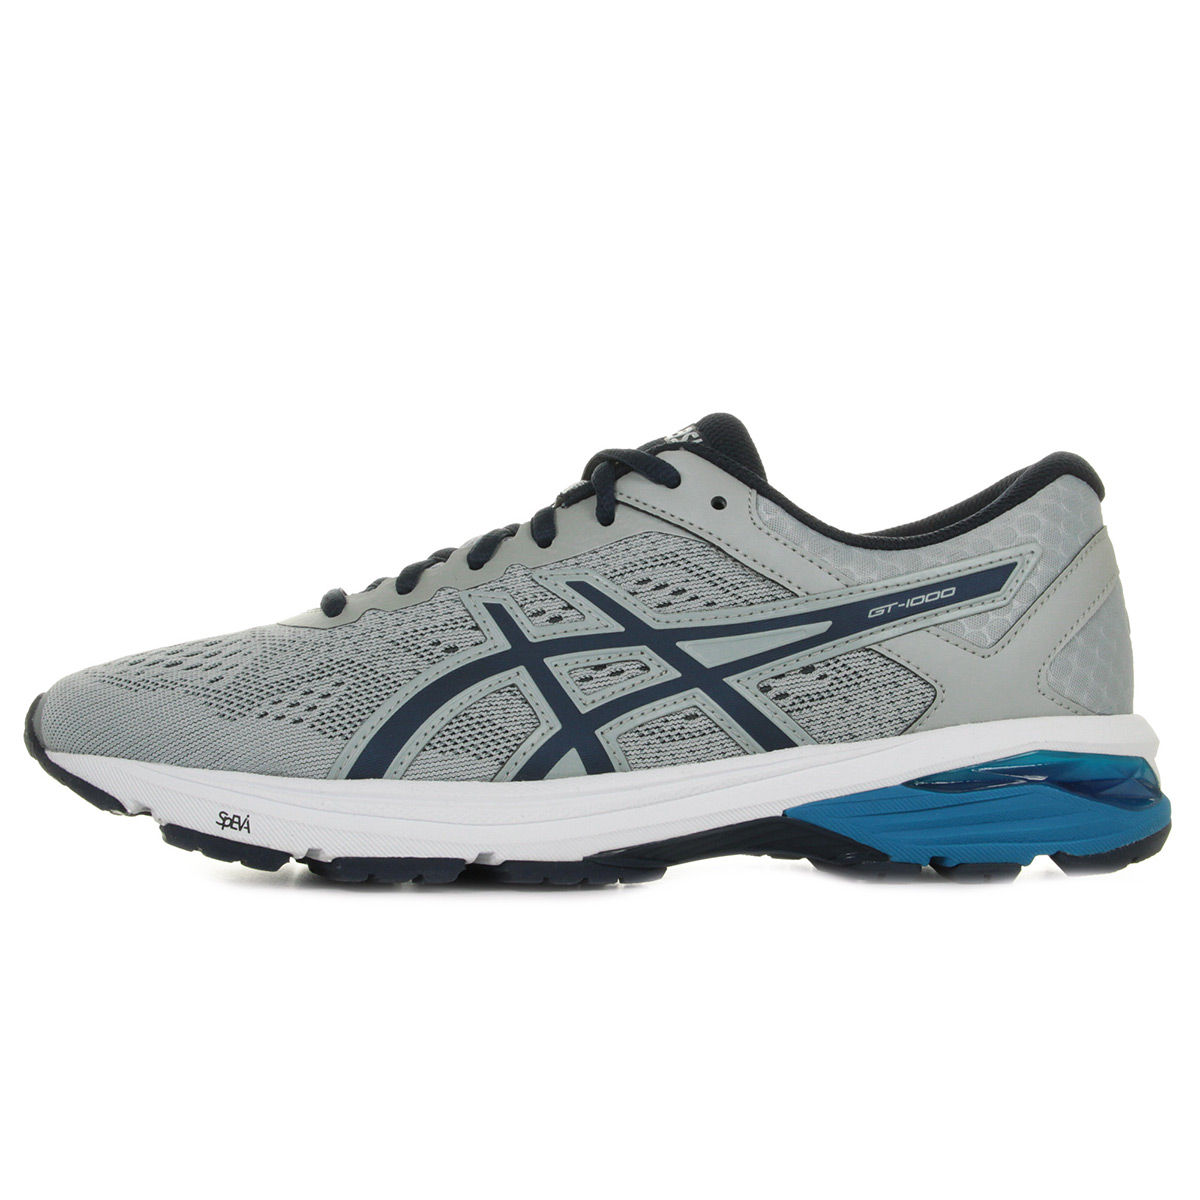 b4c1fdb2c11c Chaussures Asics homme GT-1000 6 Running taille Gris Grise ...